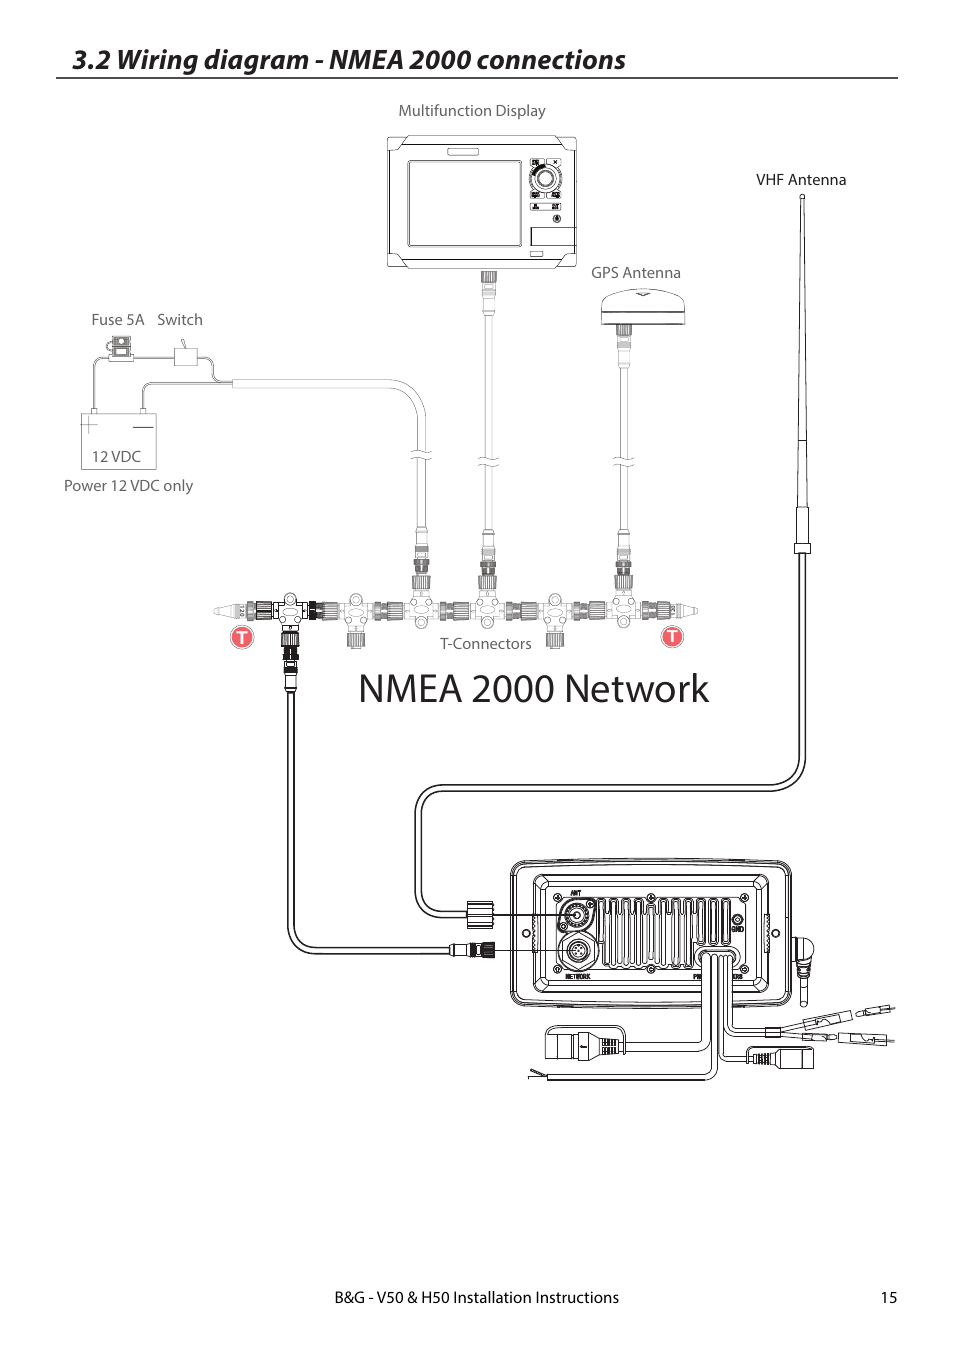 2 Wiring Diagram Nmea 2000 Connections Network Vhf Antenna Link8 Bg H50 Wireless Handset User Manual Page 15 22